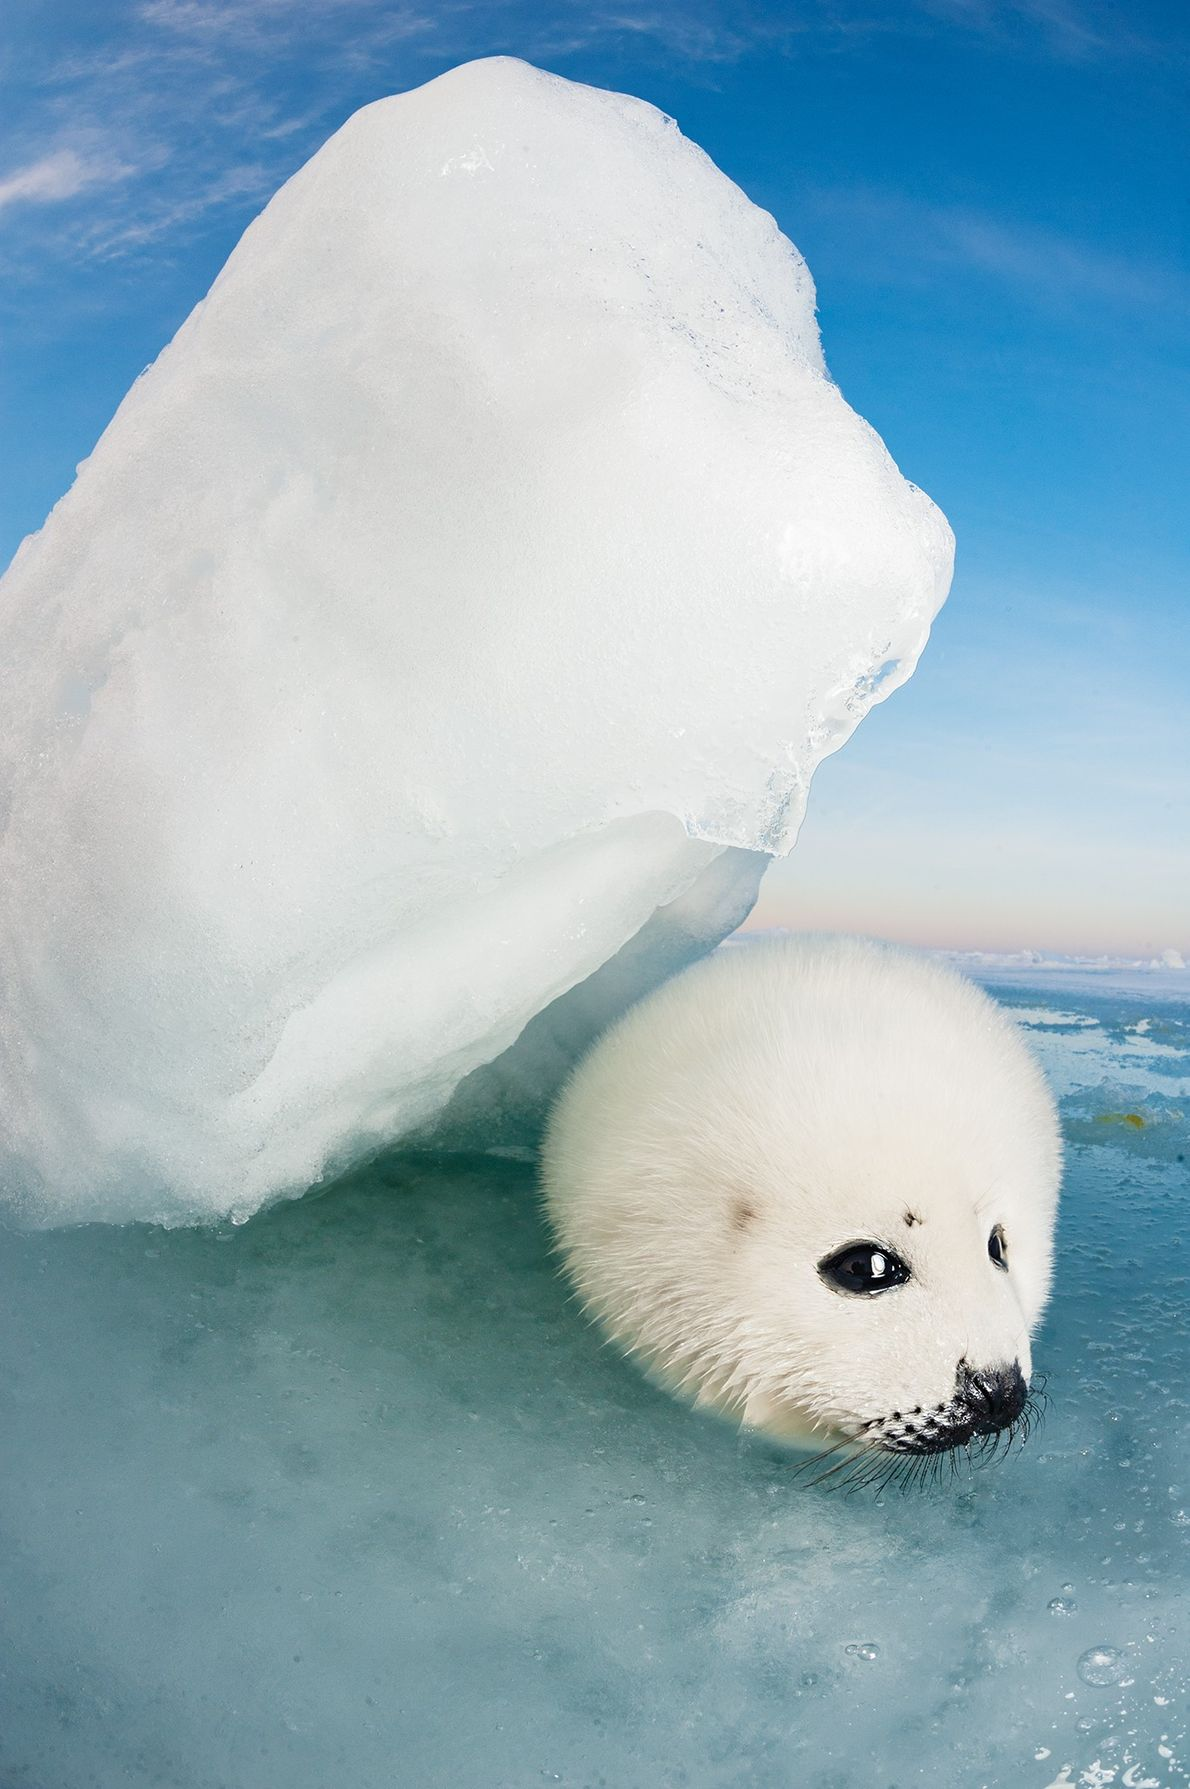 With obsidian eyes, charcoal noses, and cloud-soft fur, the young seals are among the most captivating ...